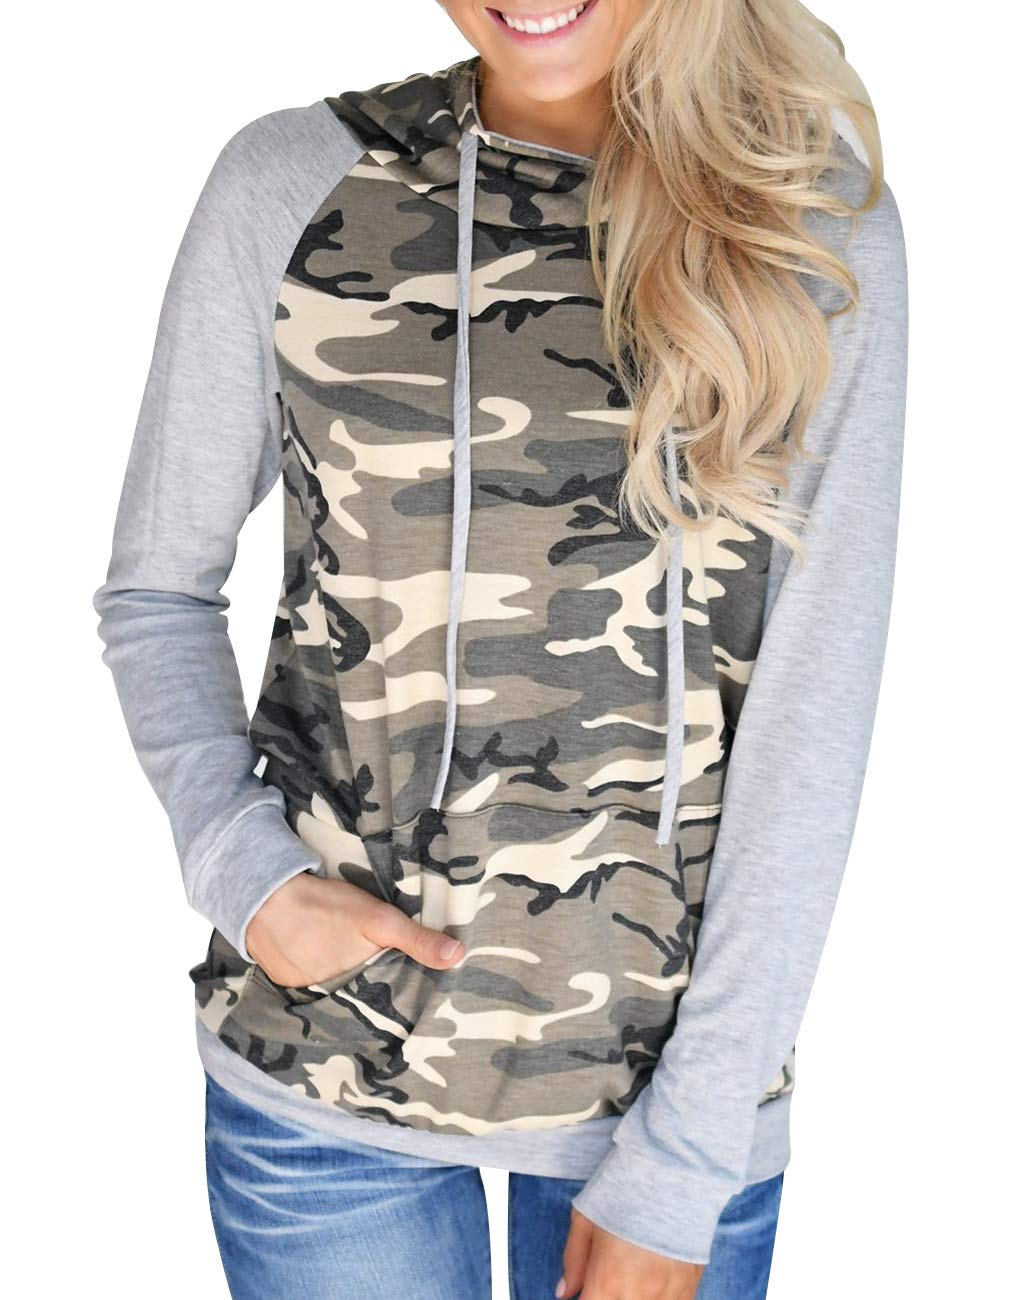 Defal Womens Casual Long Sleeve Camouflage Pullover Hoodies Pockets Sweatshirt